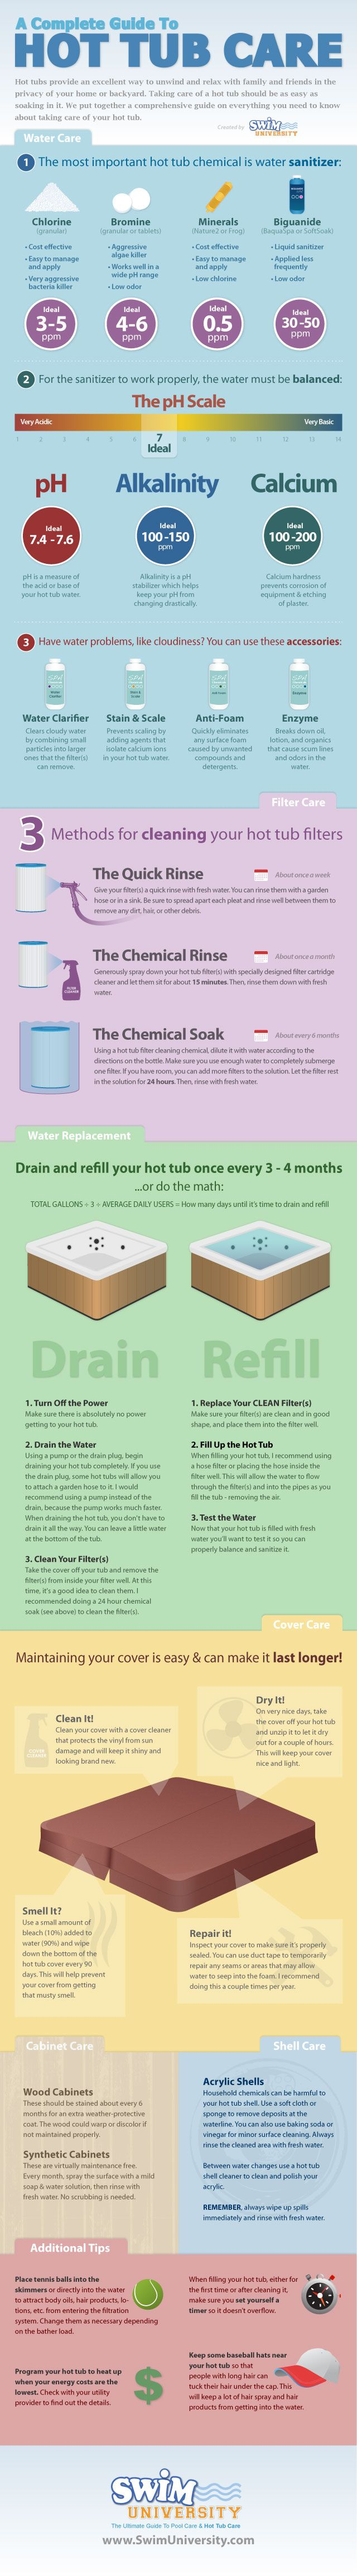 How To Take Care Of A Hot Tub Infographic Hot Tub Backyard Hot